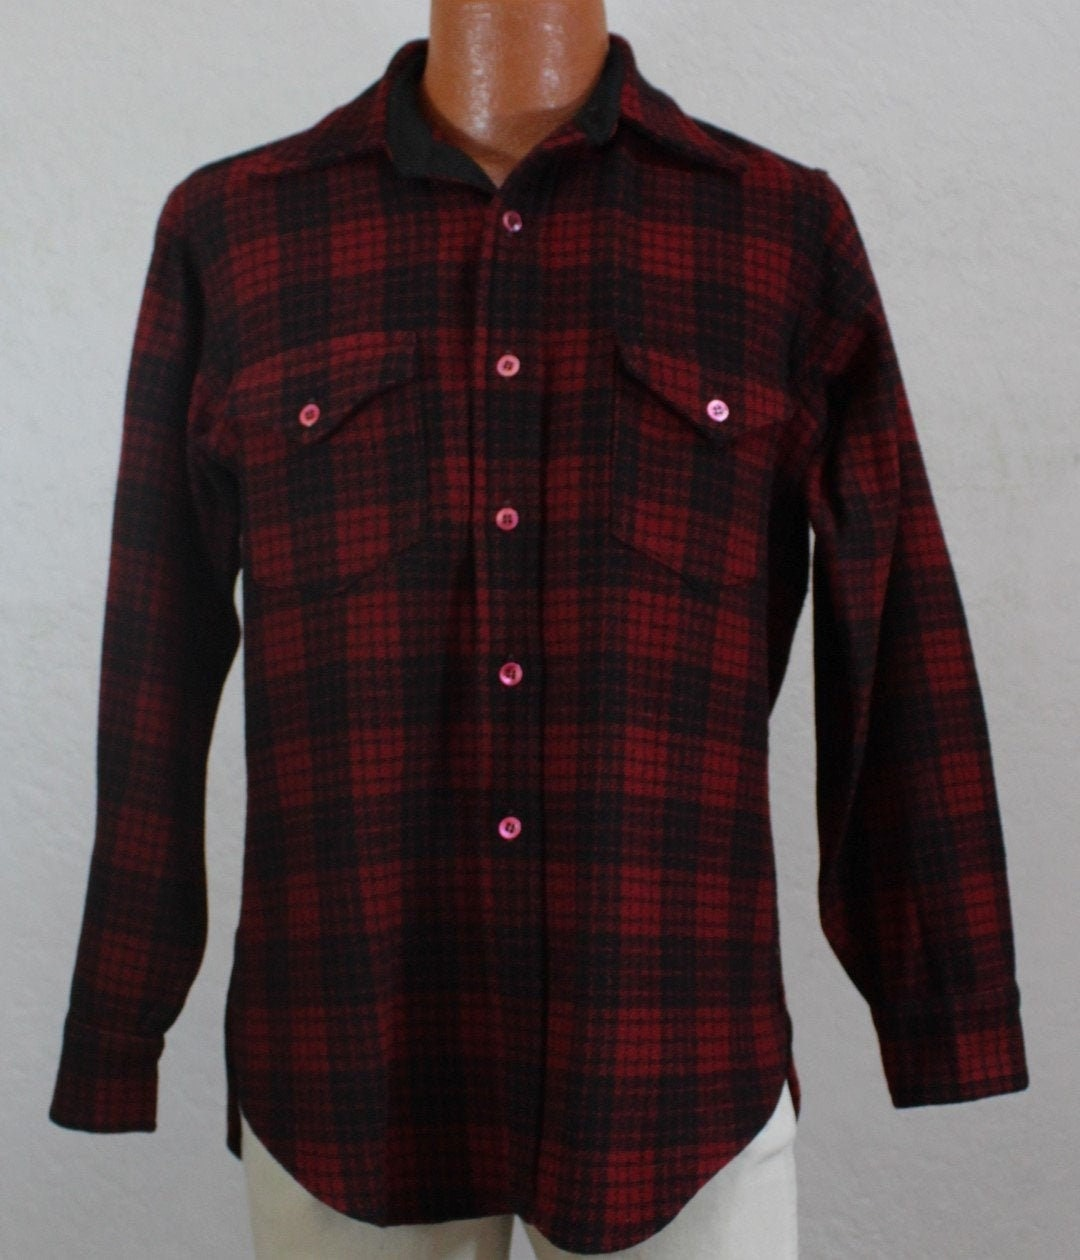 1940s Men's Shirts, Sweaters, Vests 1940s Levi Strauss Mens Red  Black Plaid Wool ShirtSize 45 Chest $11.00 AT vintagedancer.com